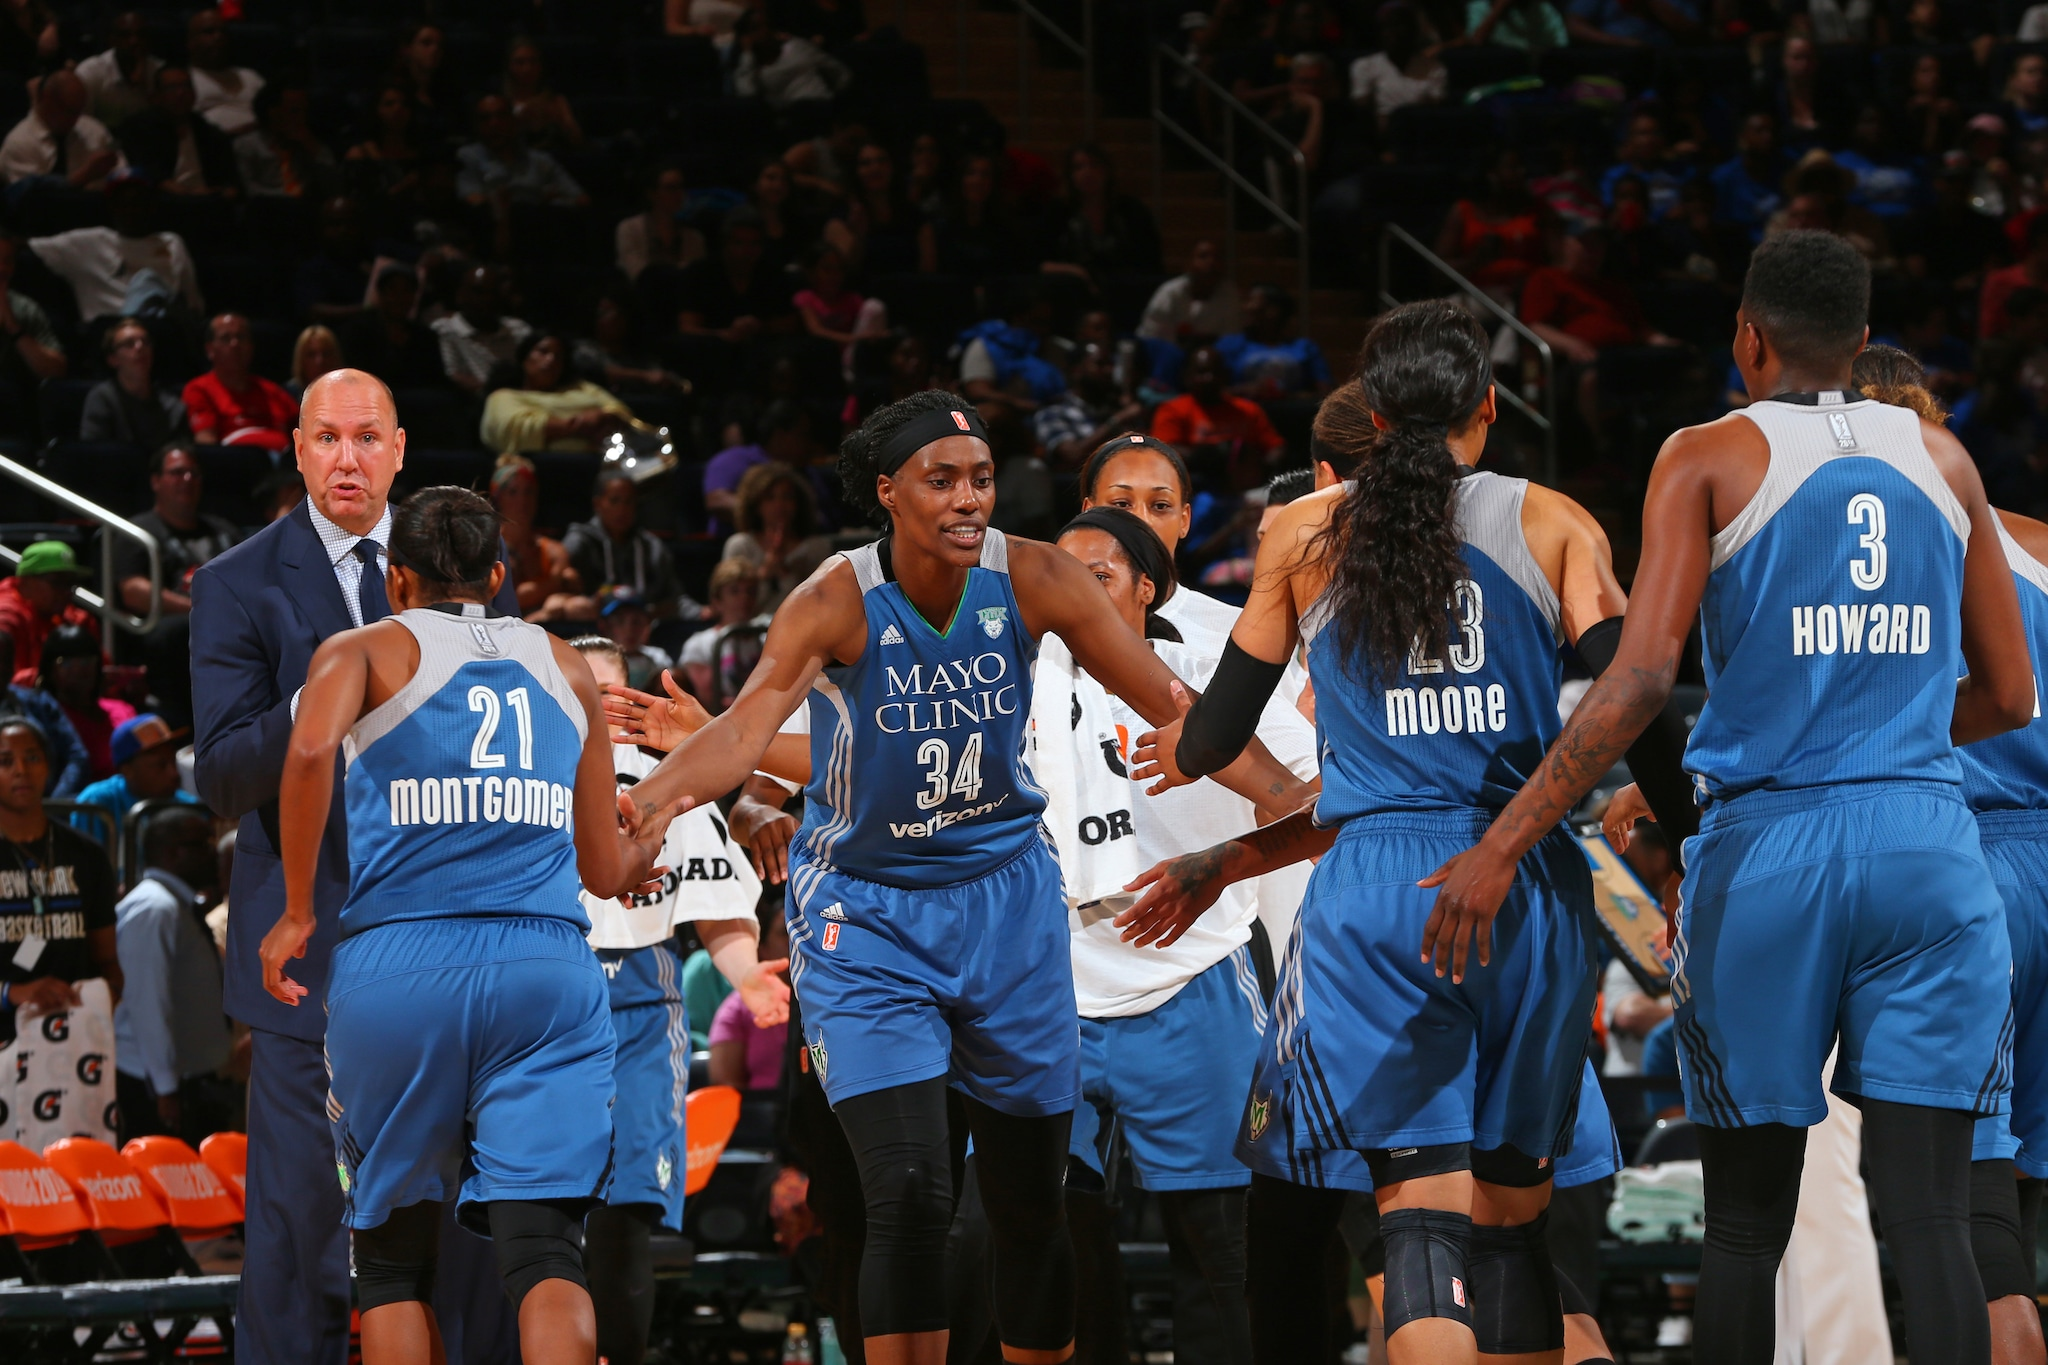 NEW YORK, NY - MAY 31:  Sylvia Fowles #34 of the Minnesota Lynx high fives her teammate during the game against the New York Liberty during the game on May 31, 2016 at Madison Square Garden in New York, New York. NOTE TO USER: User expressly acknowledges and agrees that, by downloading and or using this Photograph, user is consenting to the terms and conditions of the Getty Images License Agreement. Mandatory Copyright Notice: Copyright 2016 NBAE (Photo by Mike Stobe/NBAE via Getty Images)